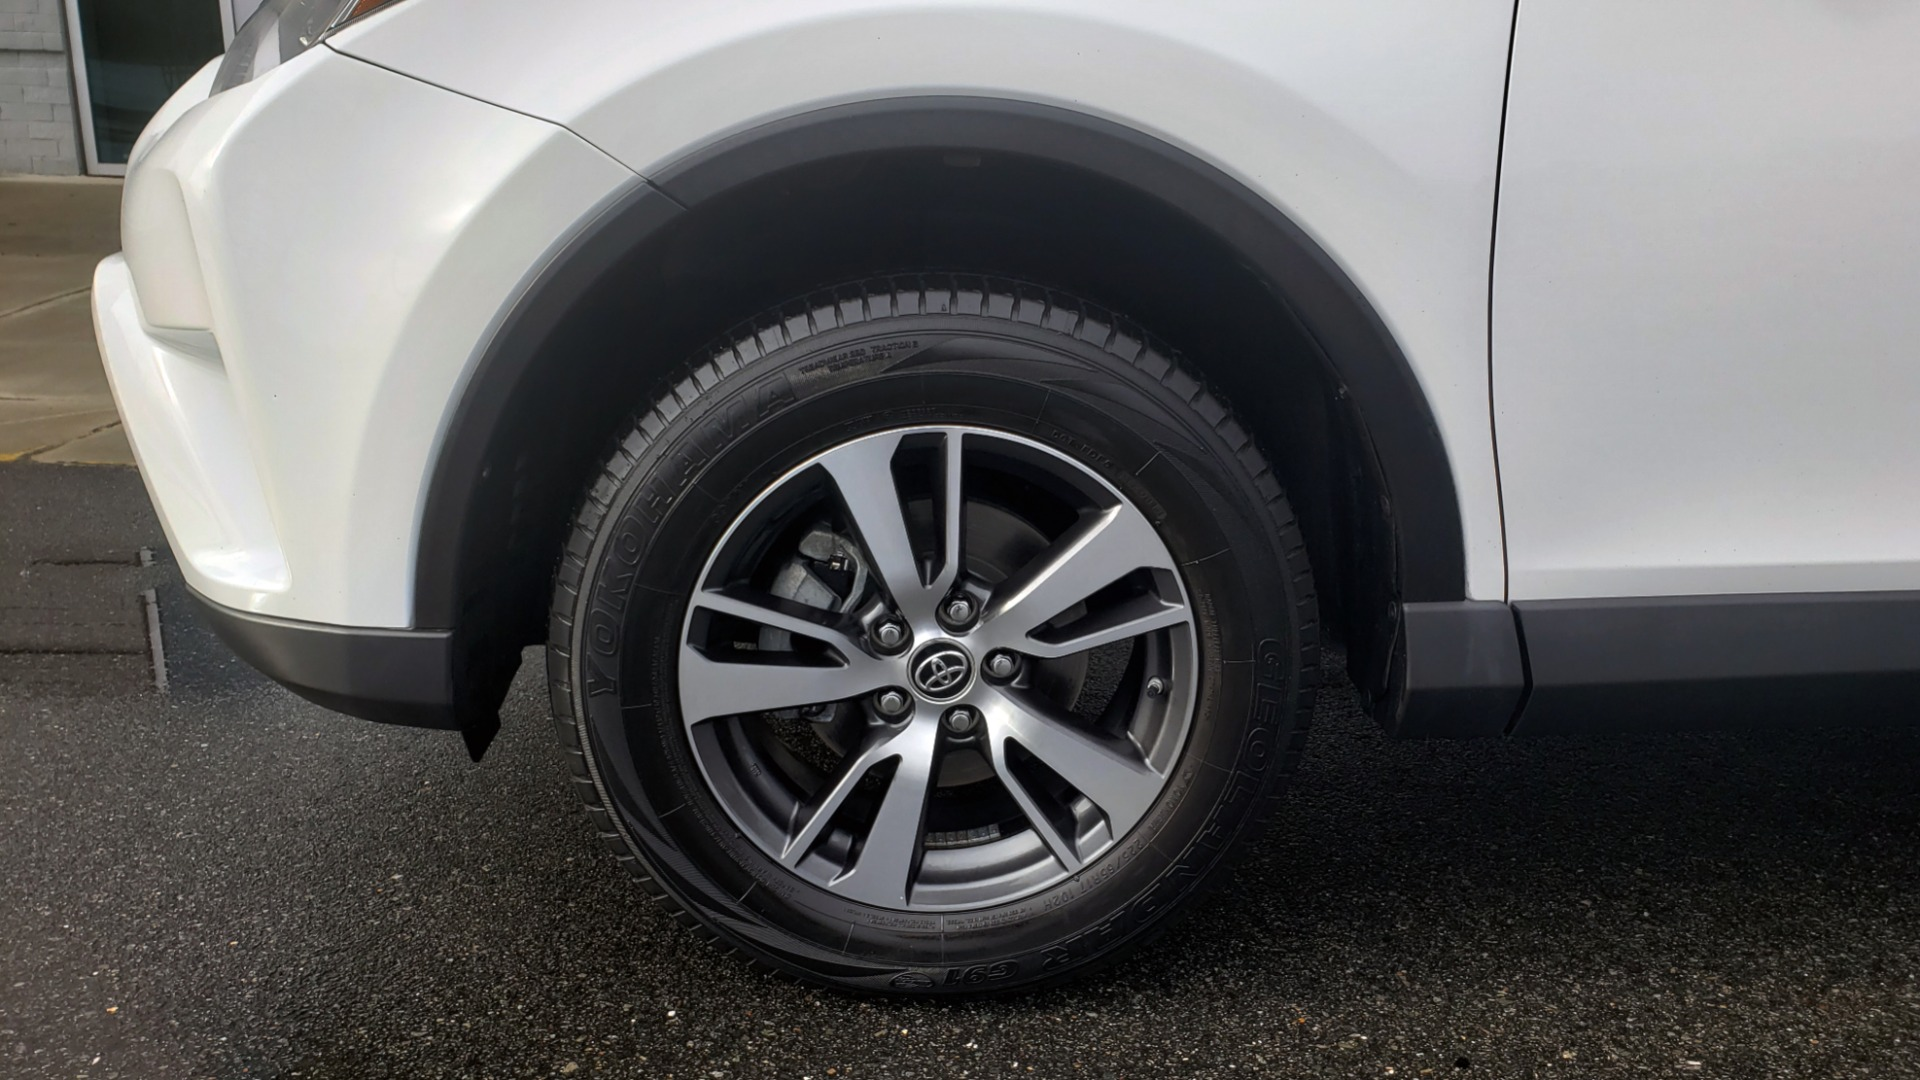 Used 2018 Toyota RAV4 XLE / FWD / 4-CYL / 6-SPD AUTO / BSM / REAR CROSS TRAFFIC ALERT for sale Sold at Formula Imports in Charlotte NC 28227 78